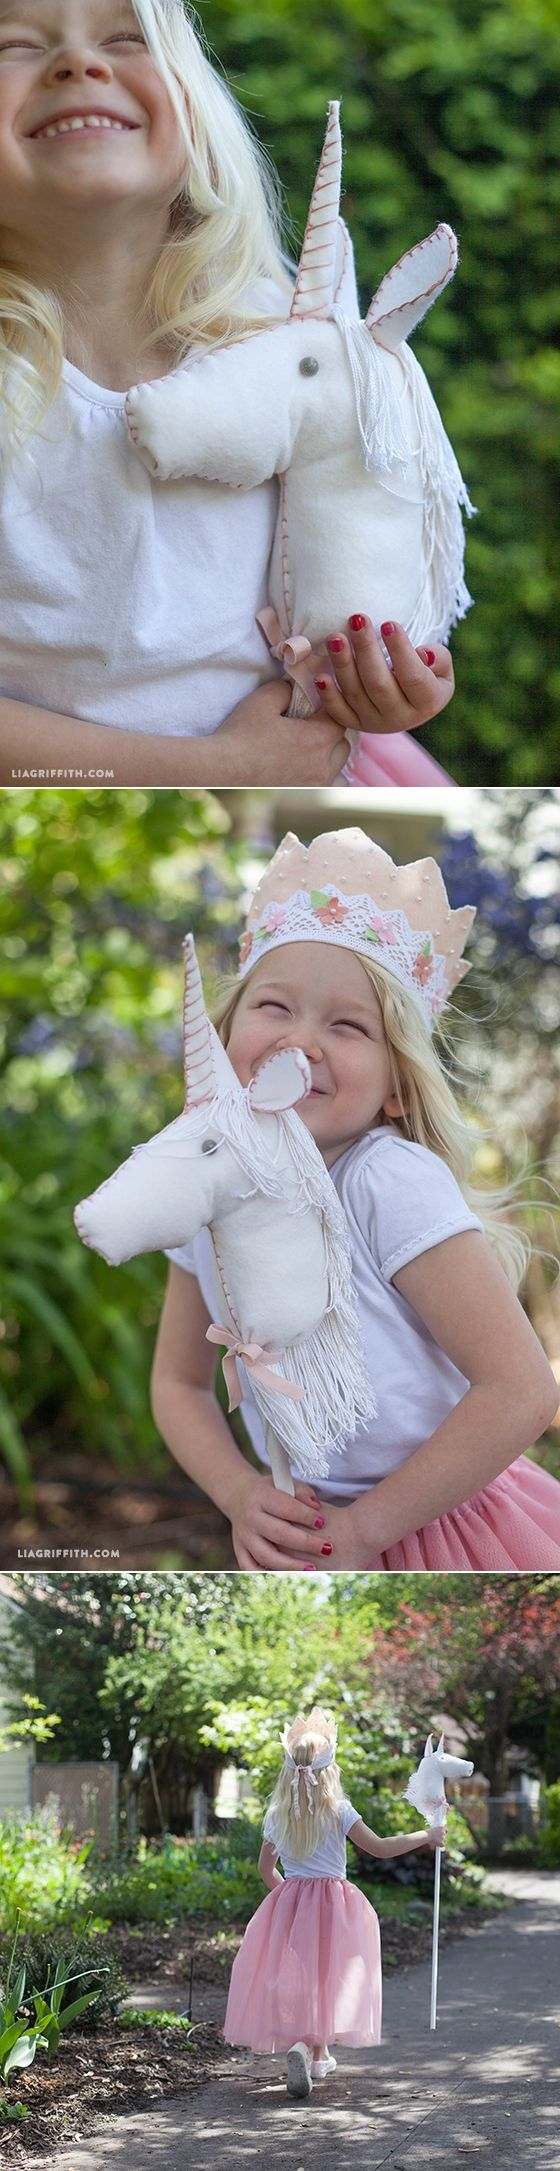 #Unicorn #DIY www.LiaGriffith.com